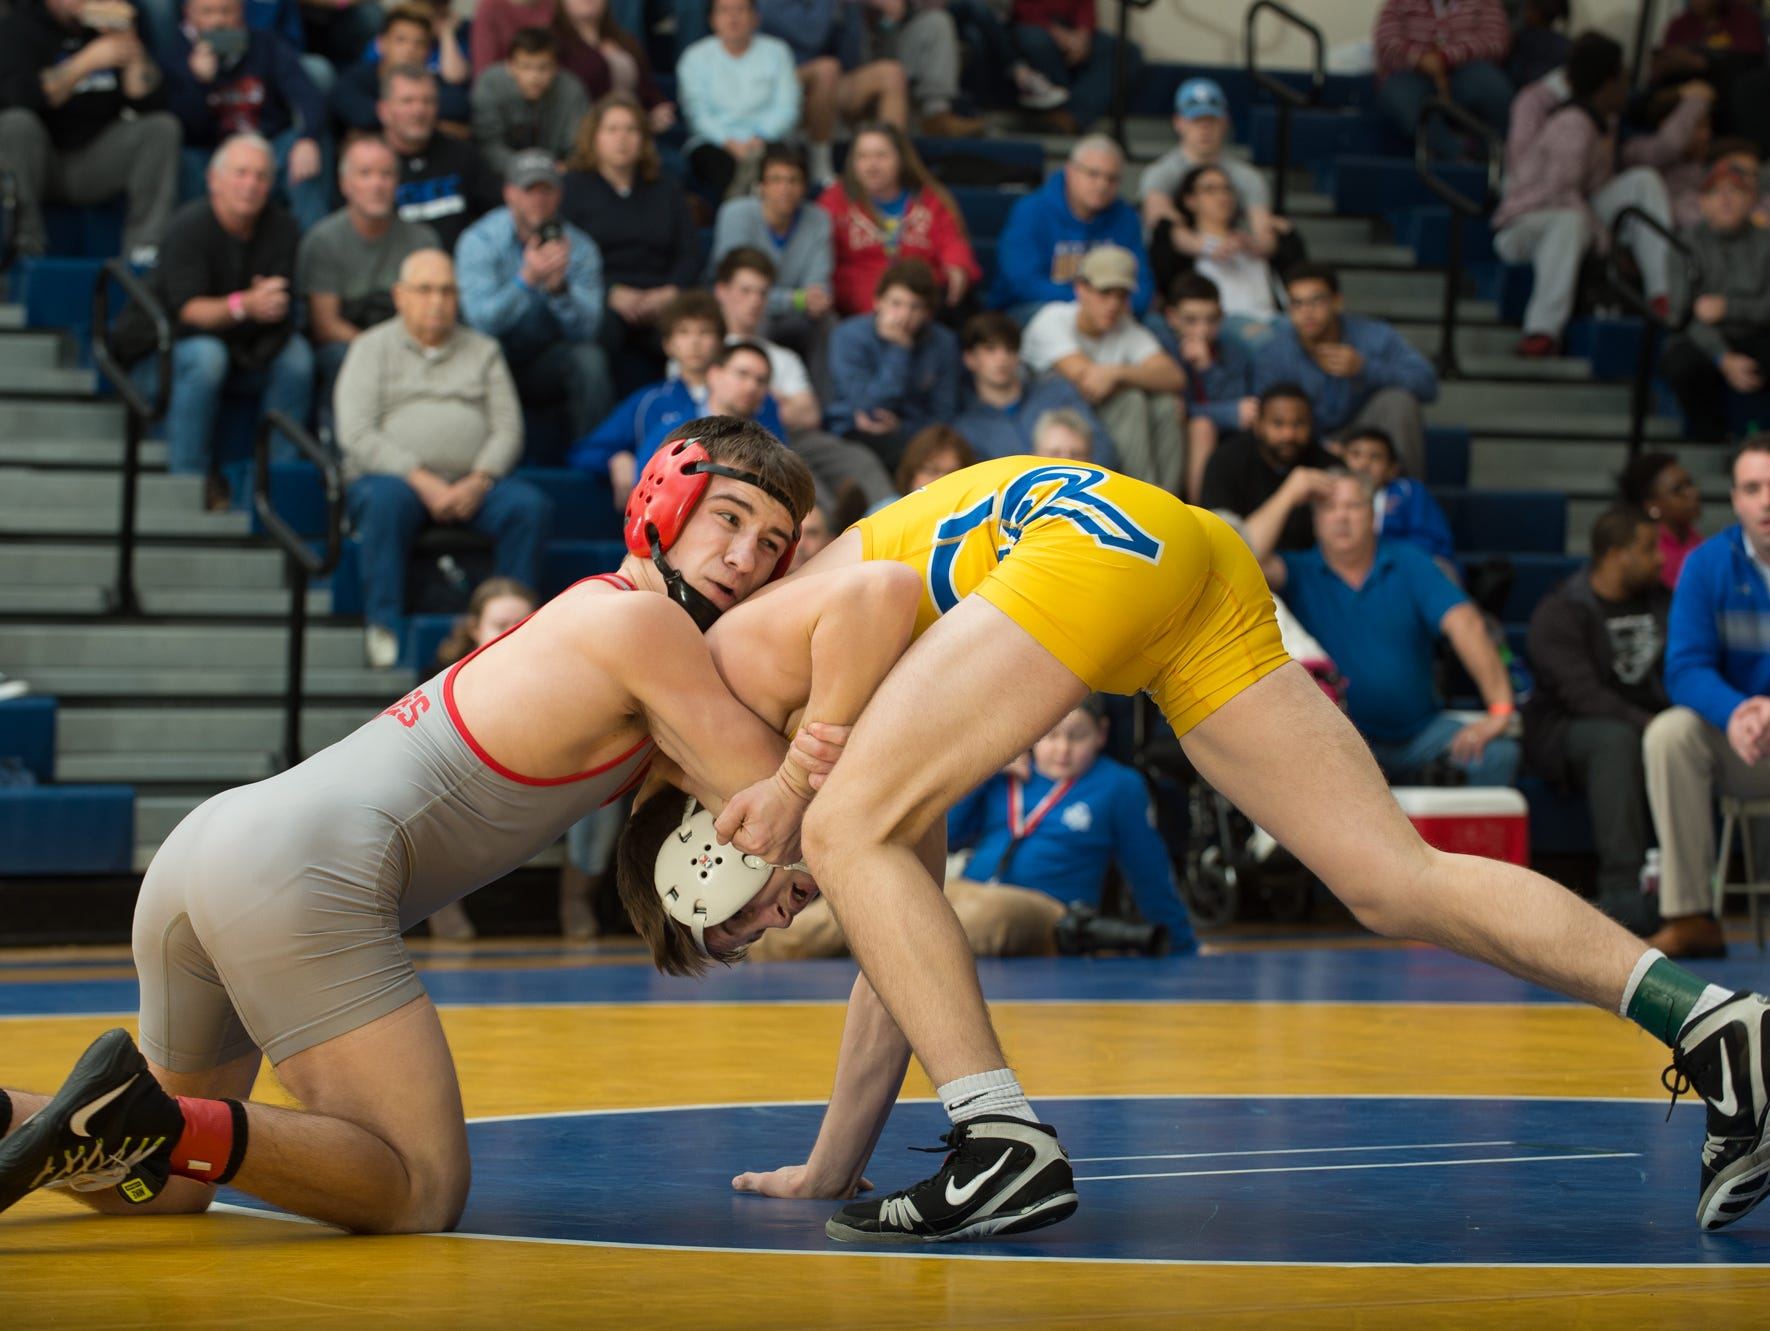 Action shots from the finals of the Henlopen Conference wrestling tournament. Presto ID 97919668